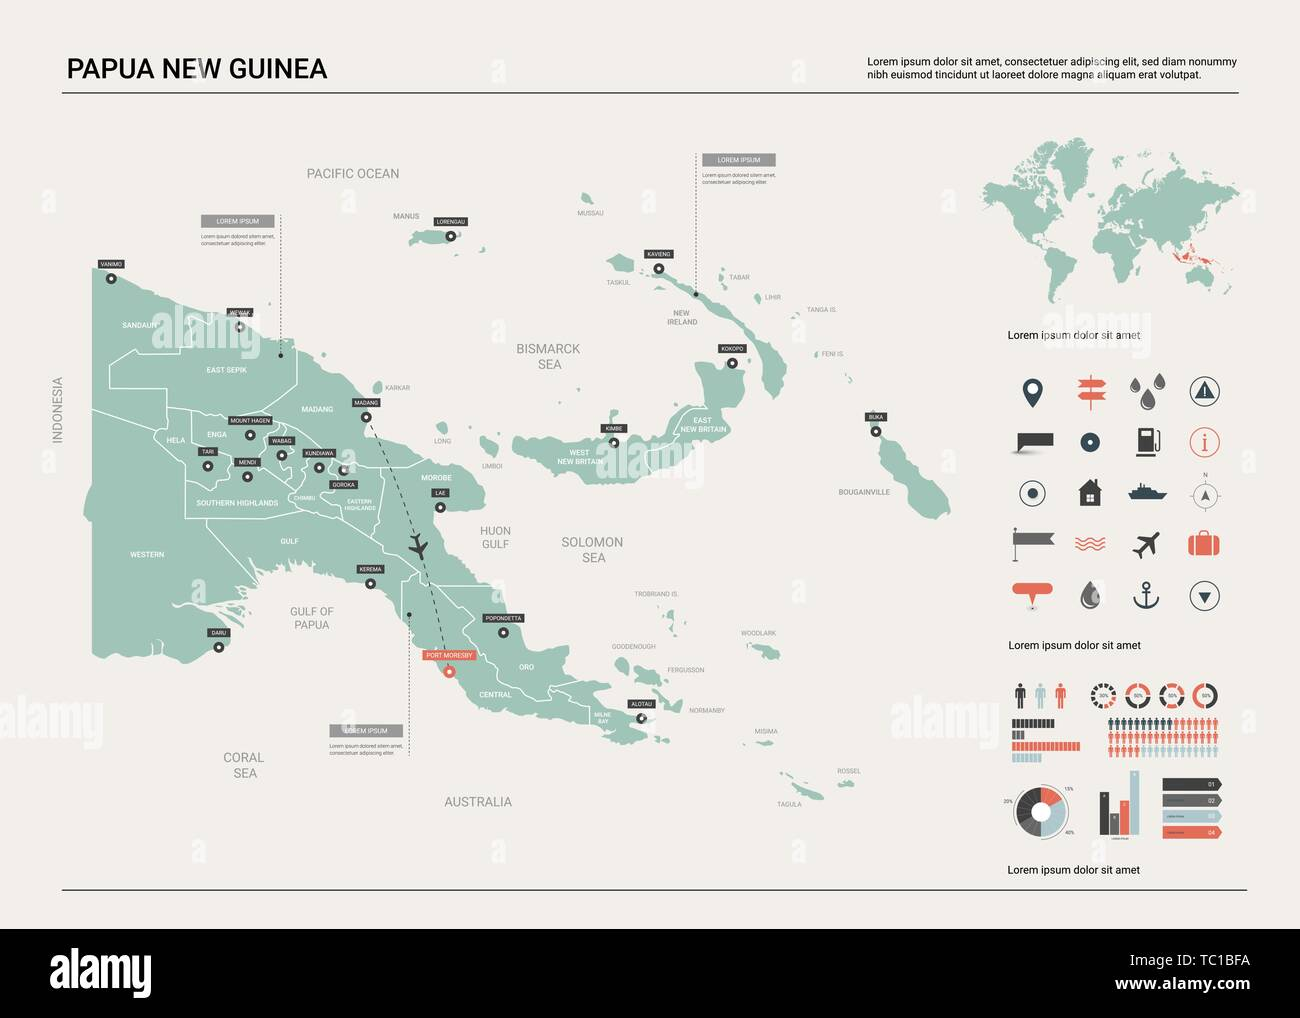 Vector Map Of Papua New Guinea Country Map With Division Cities And Capital Port Moresby Political Map World Map Infographic Elements Stock Vector Image Art Alamy